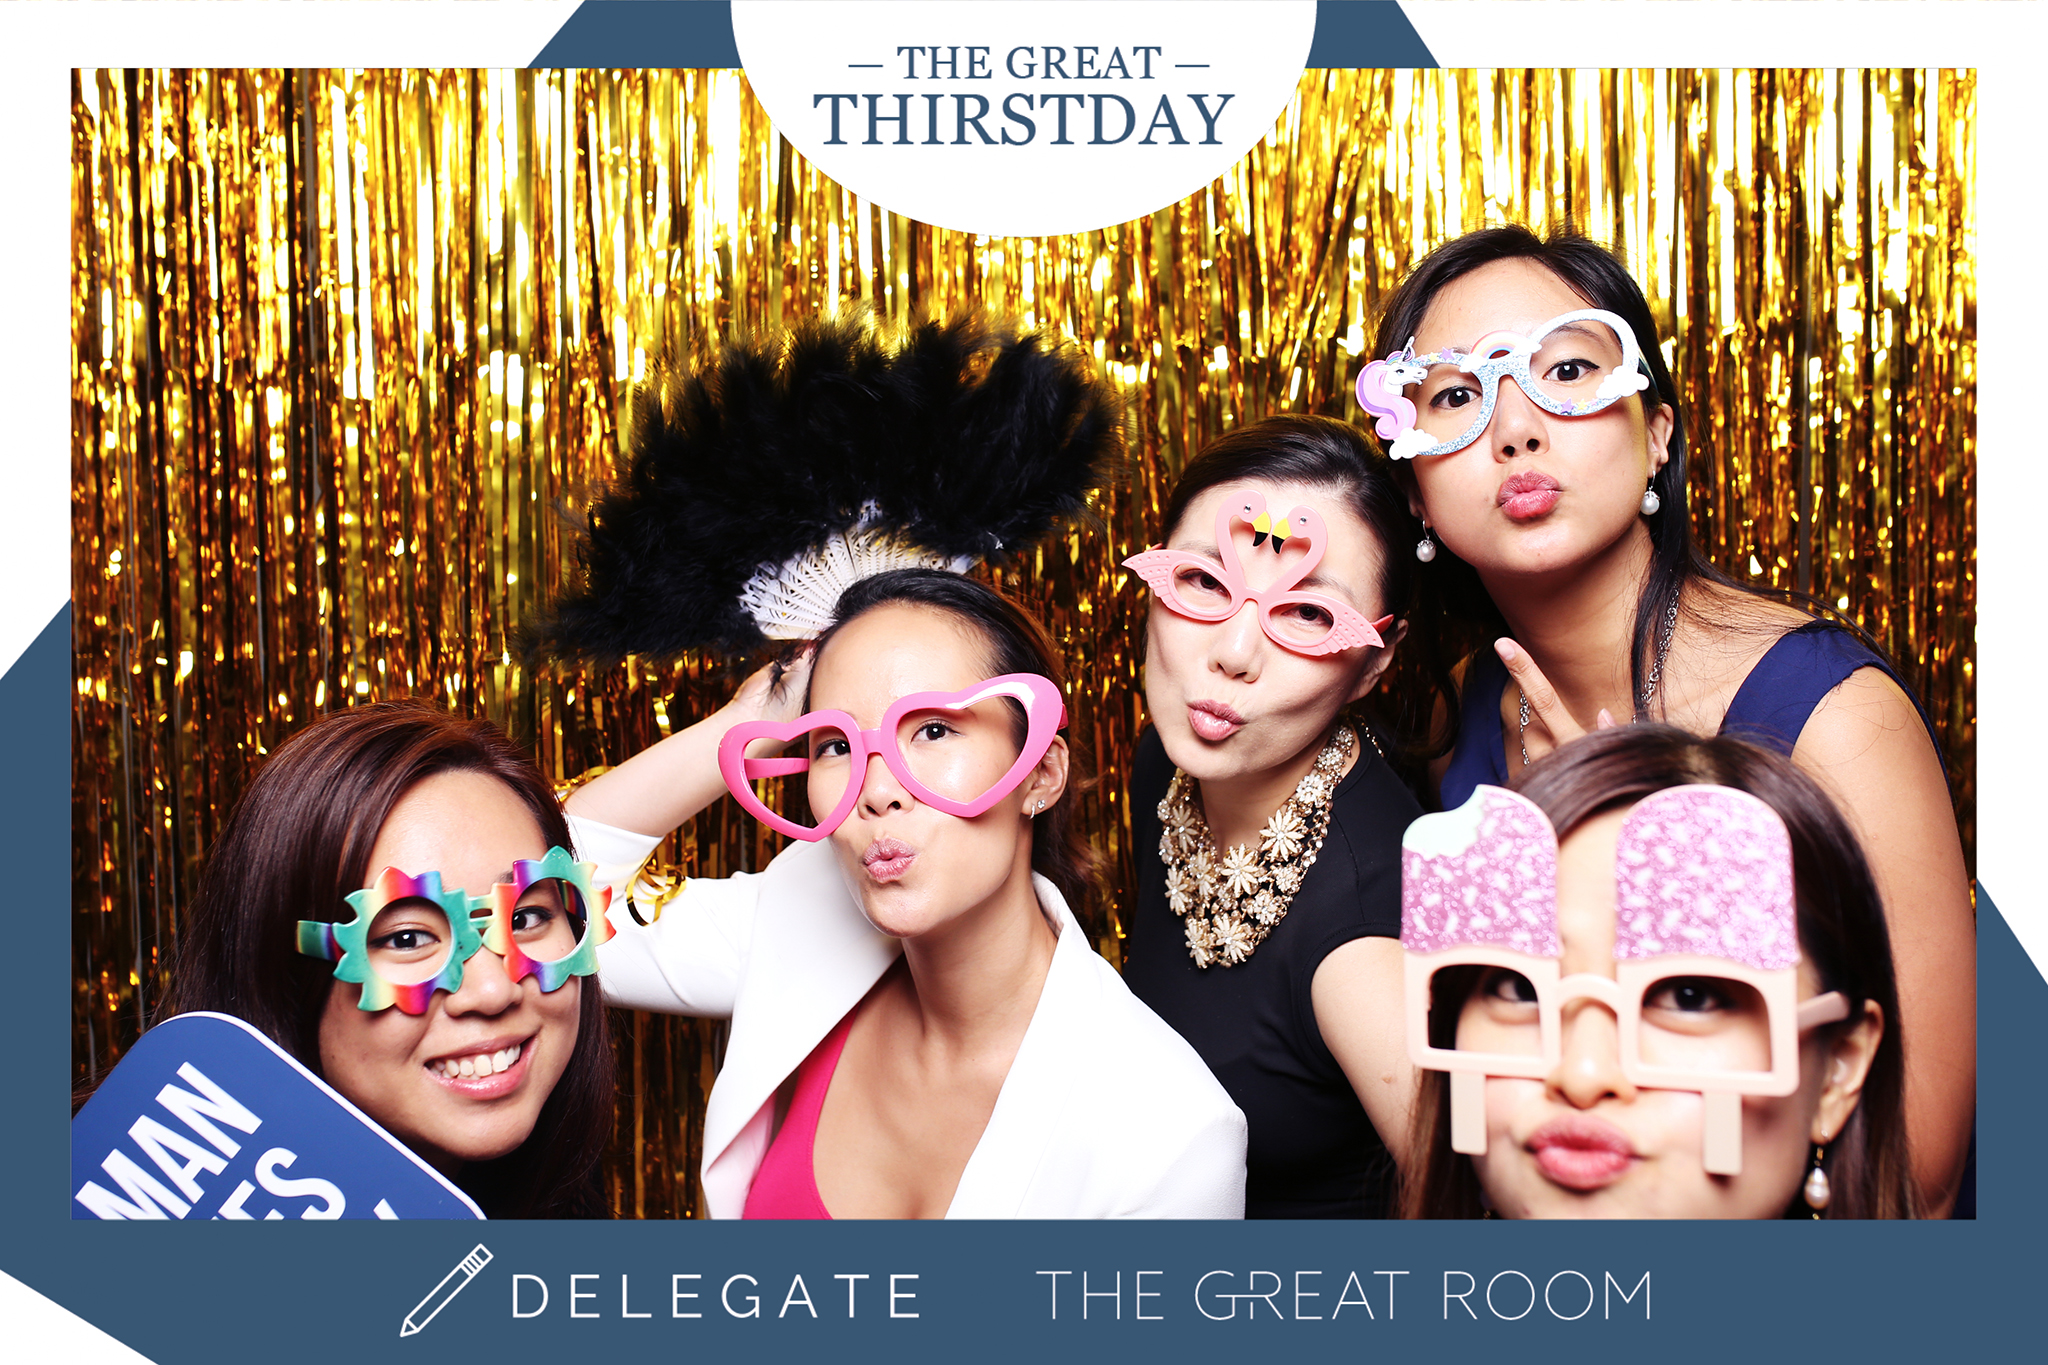 Delegate x The Great Thirstday9